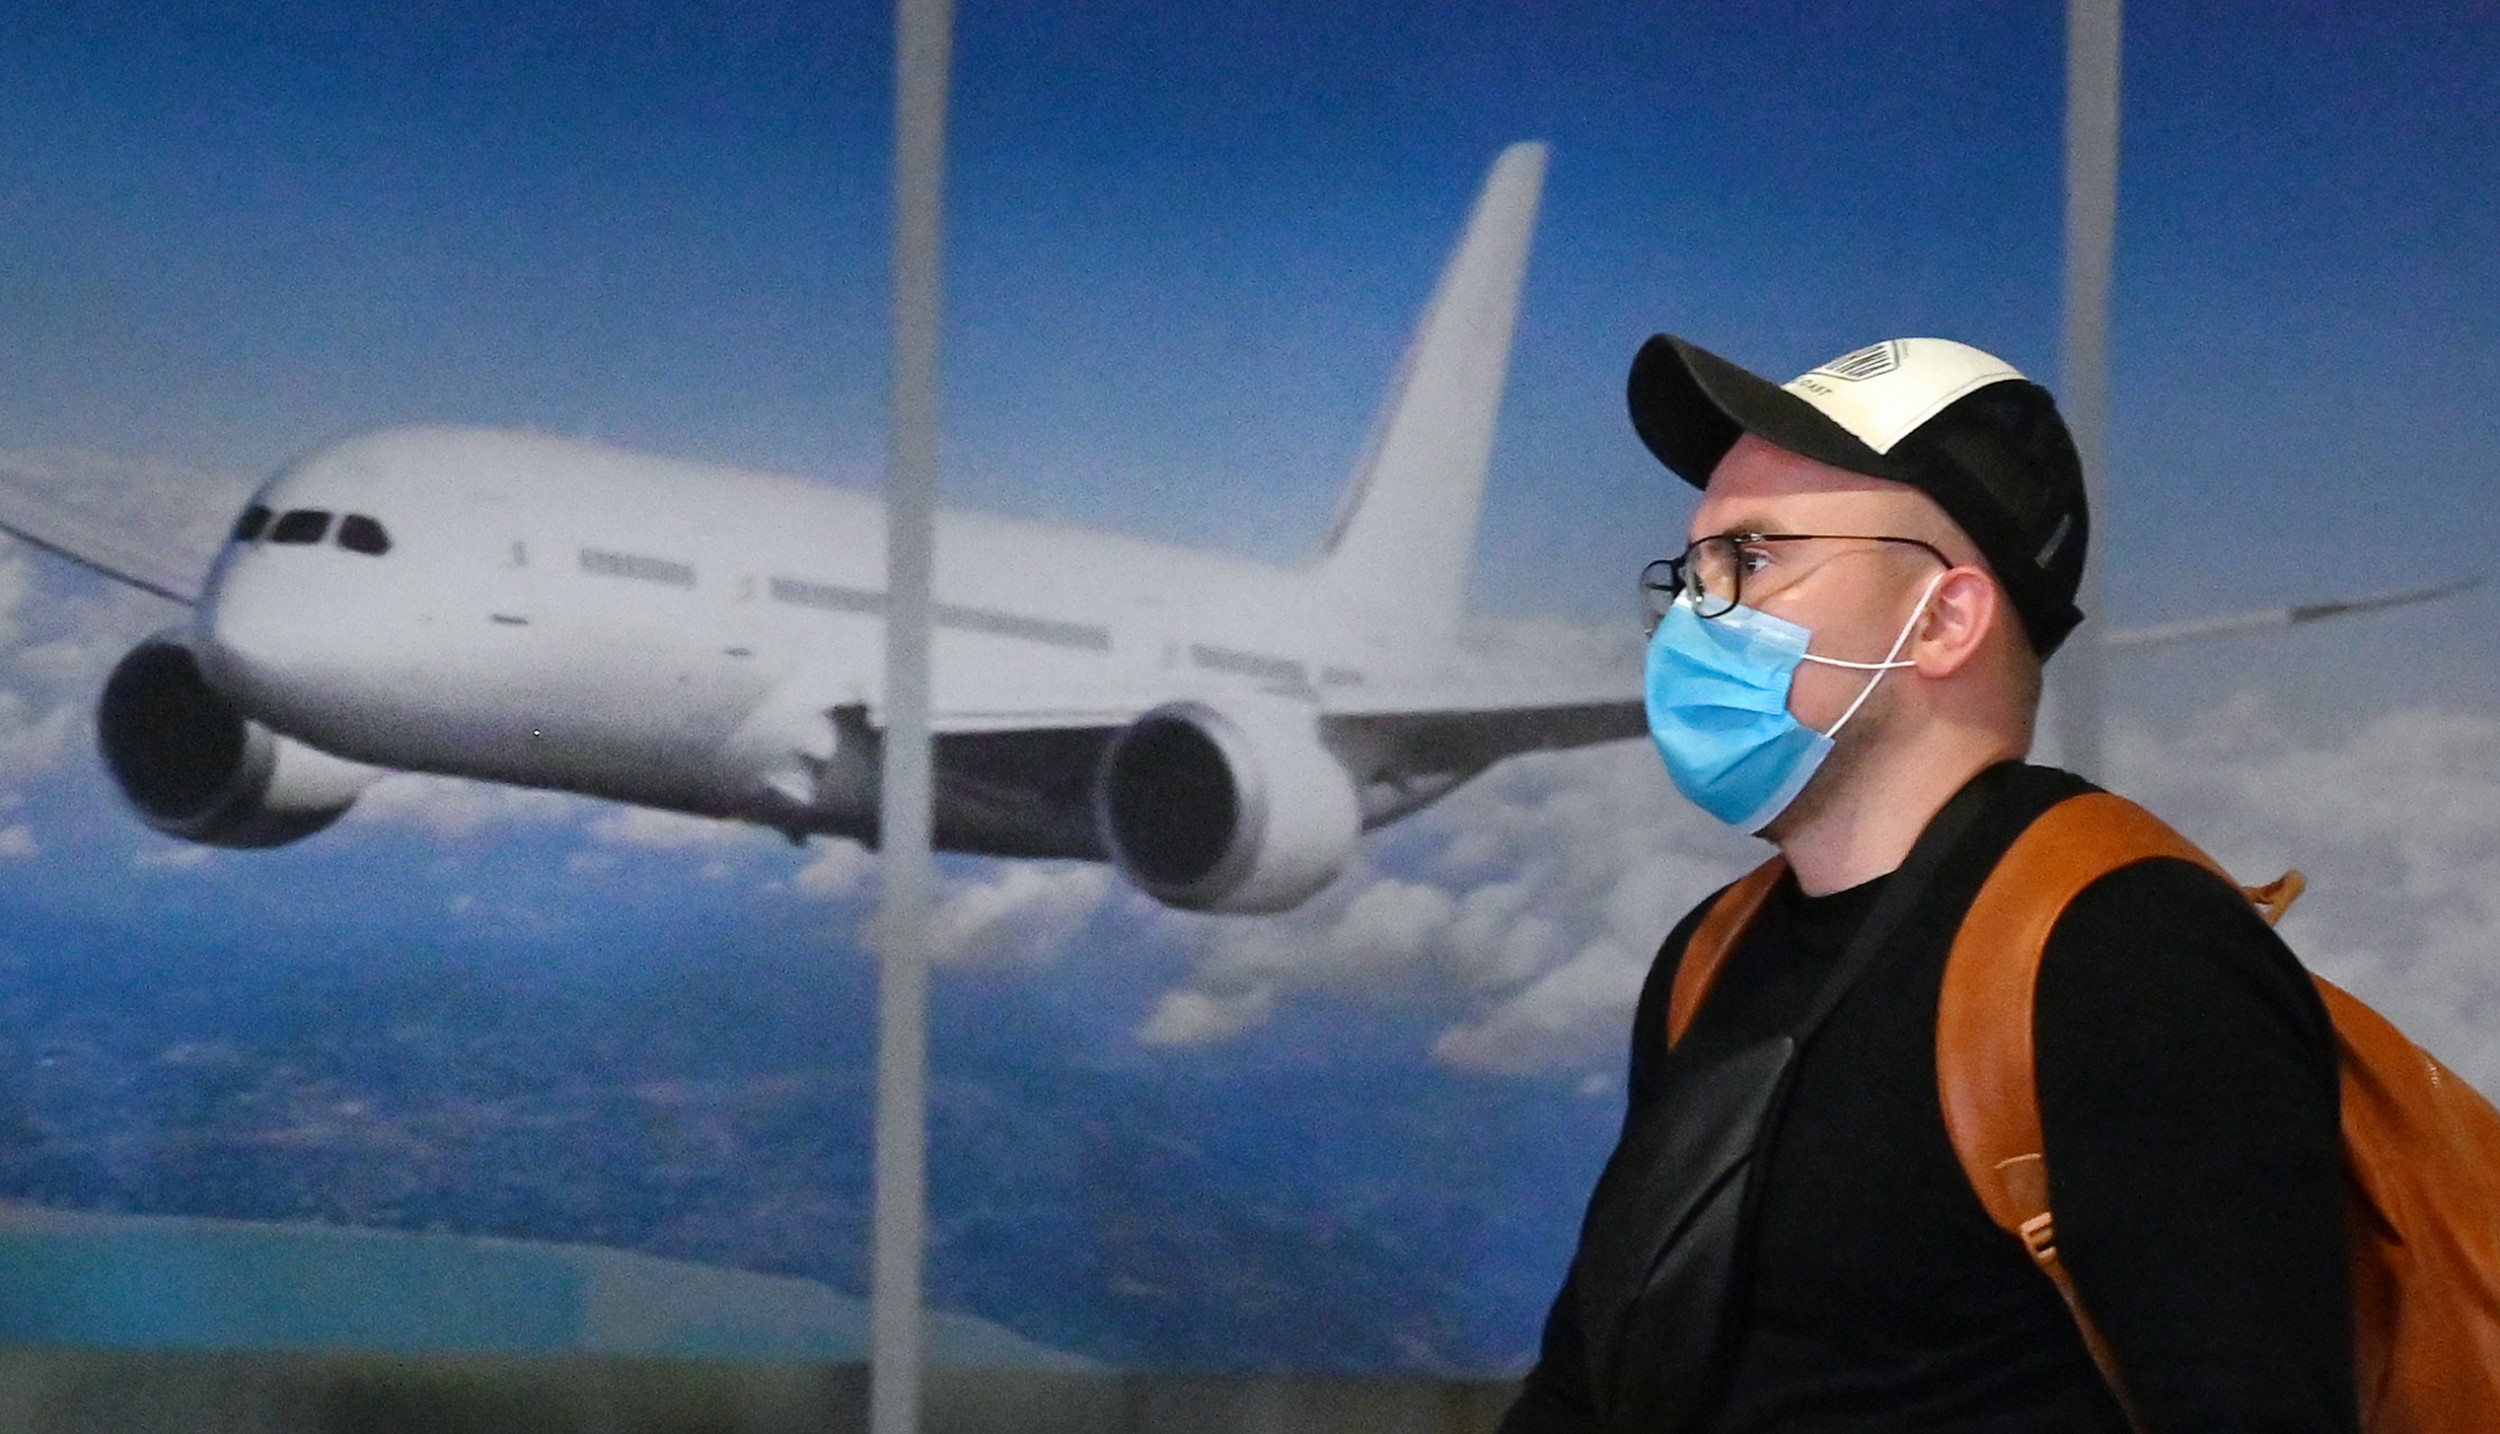 TRAVELLING BETWEEN DEADLY CORONAVIRUS